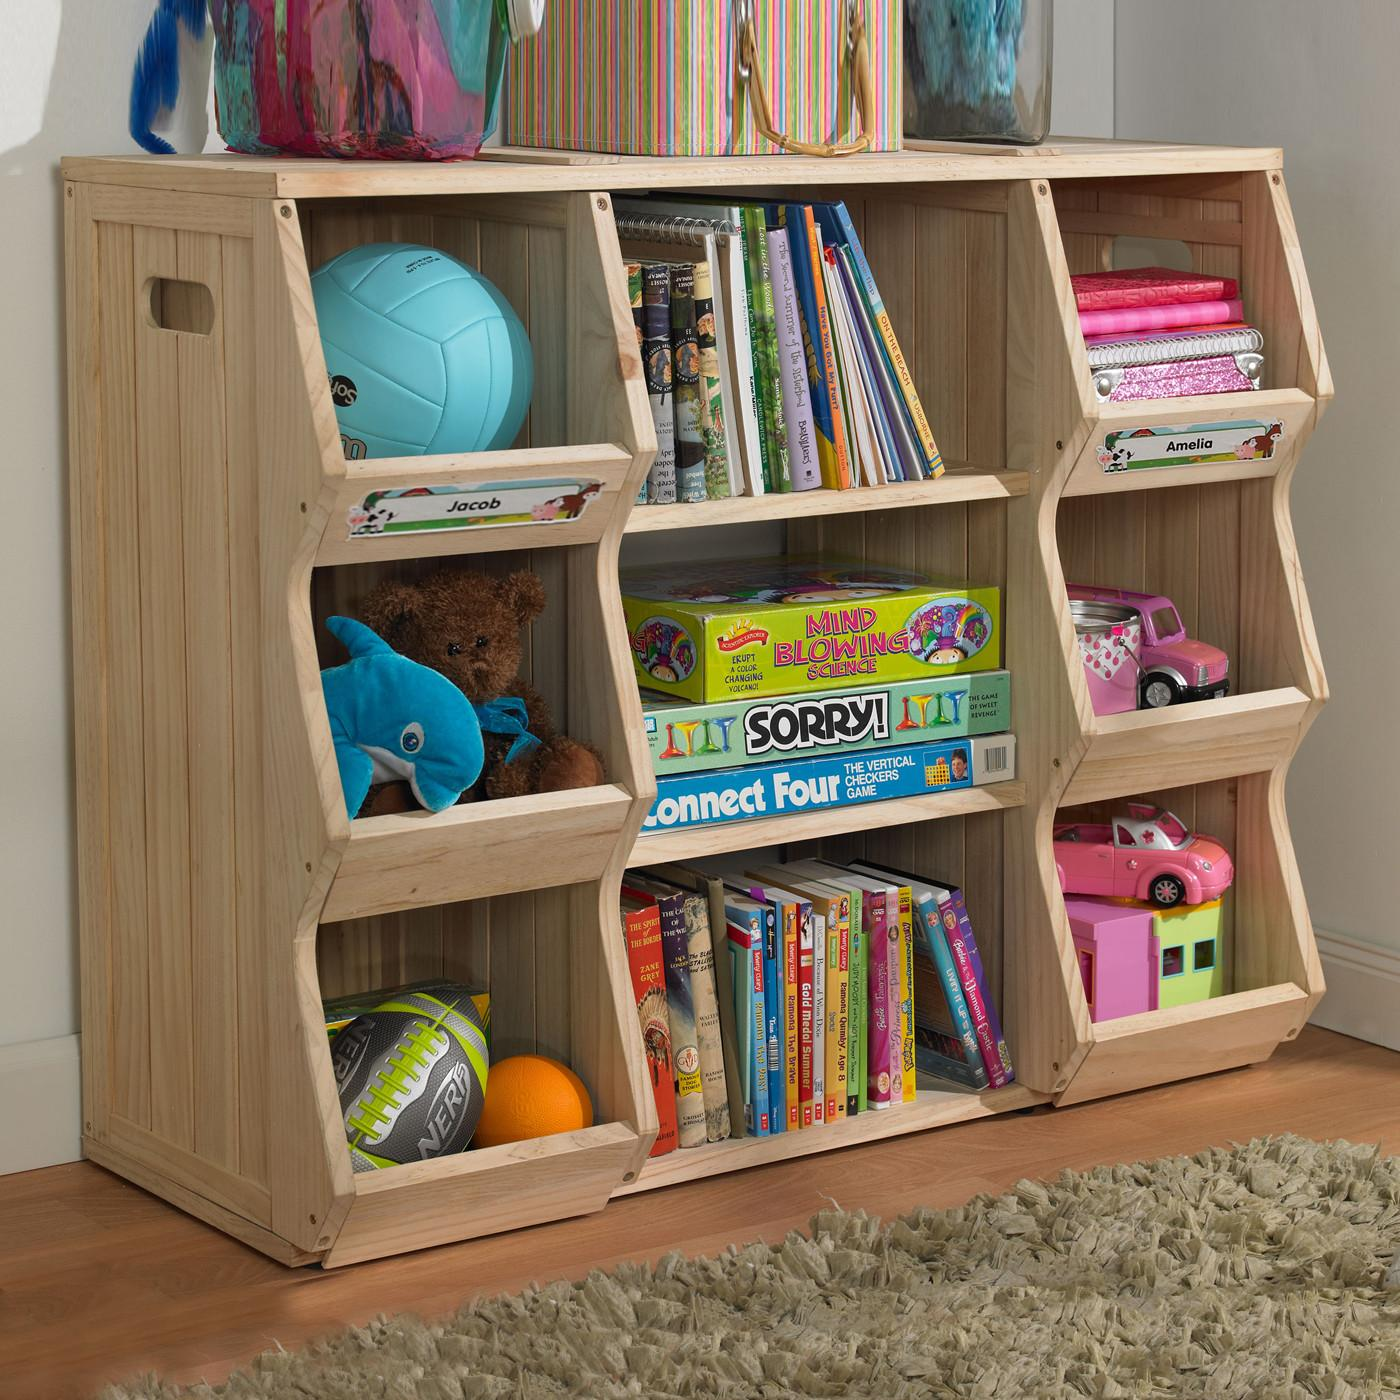 Merry Products Slf Children Bookshelf Cubby